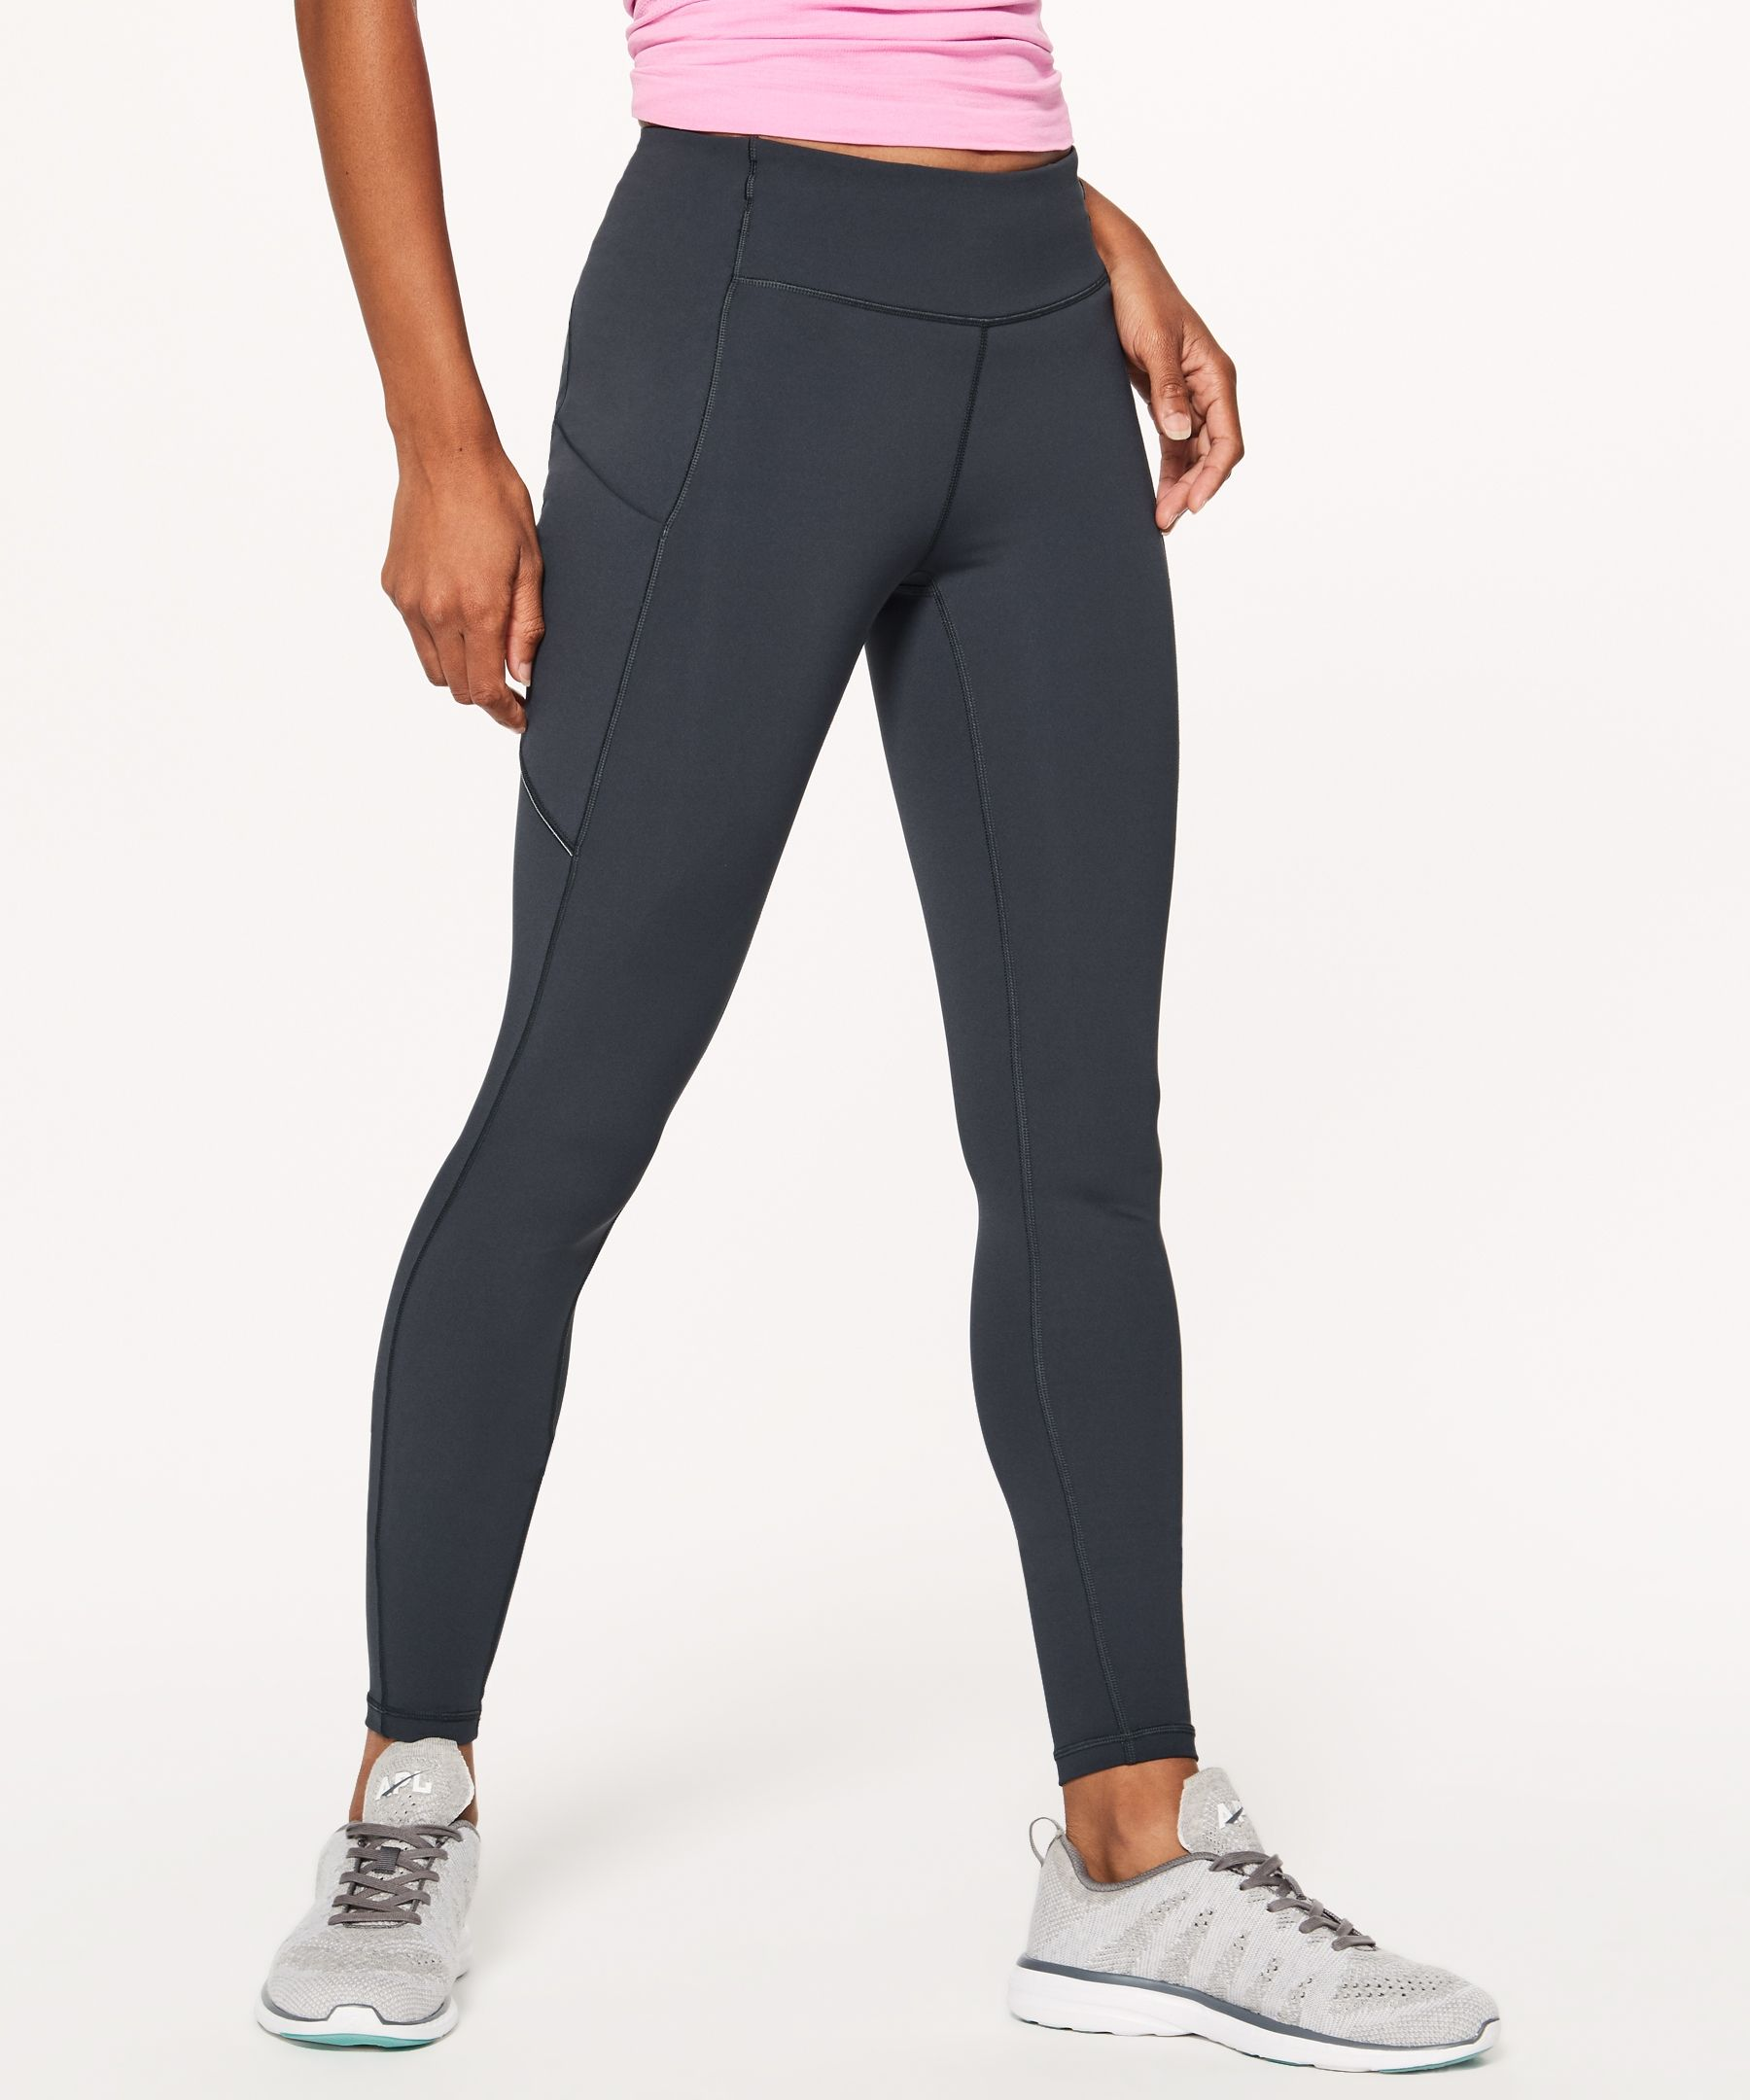 53d83e734f7c09 Speed Up Tight *28 size 10 navy, black, or grey | Gifts | Pants for ...